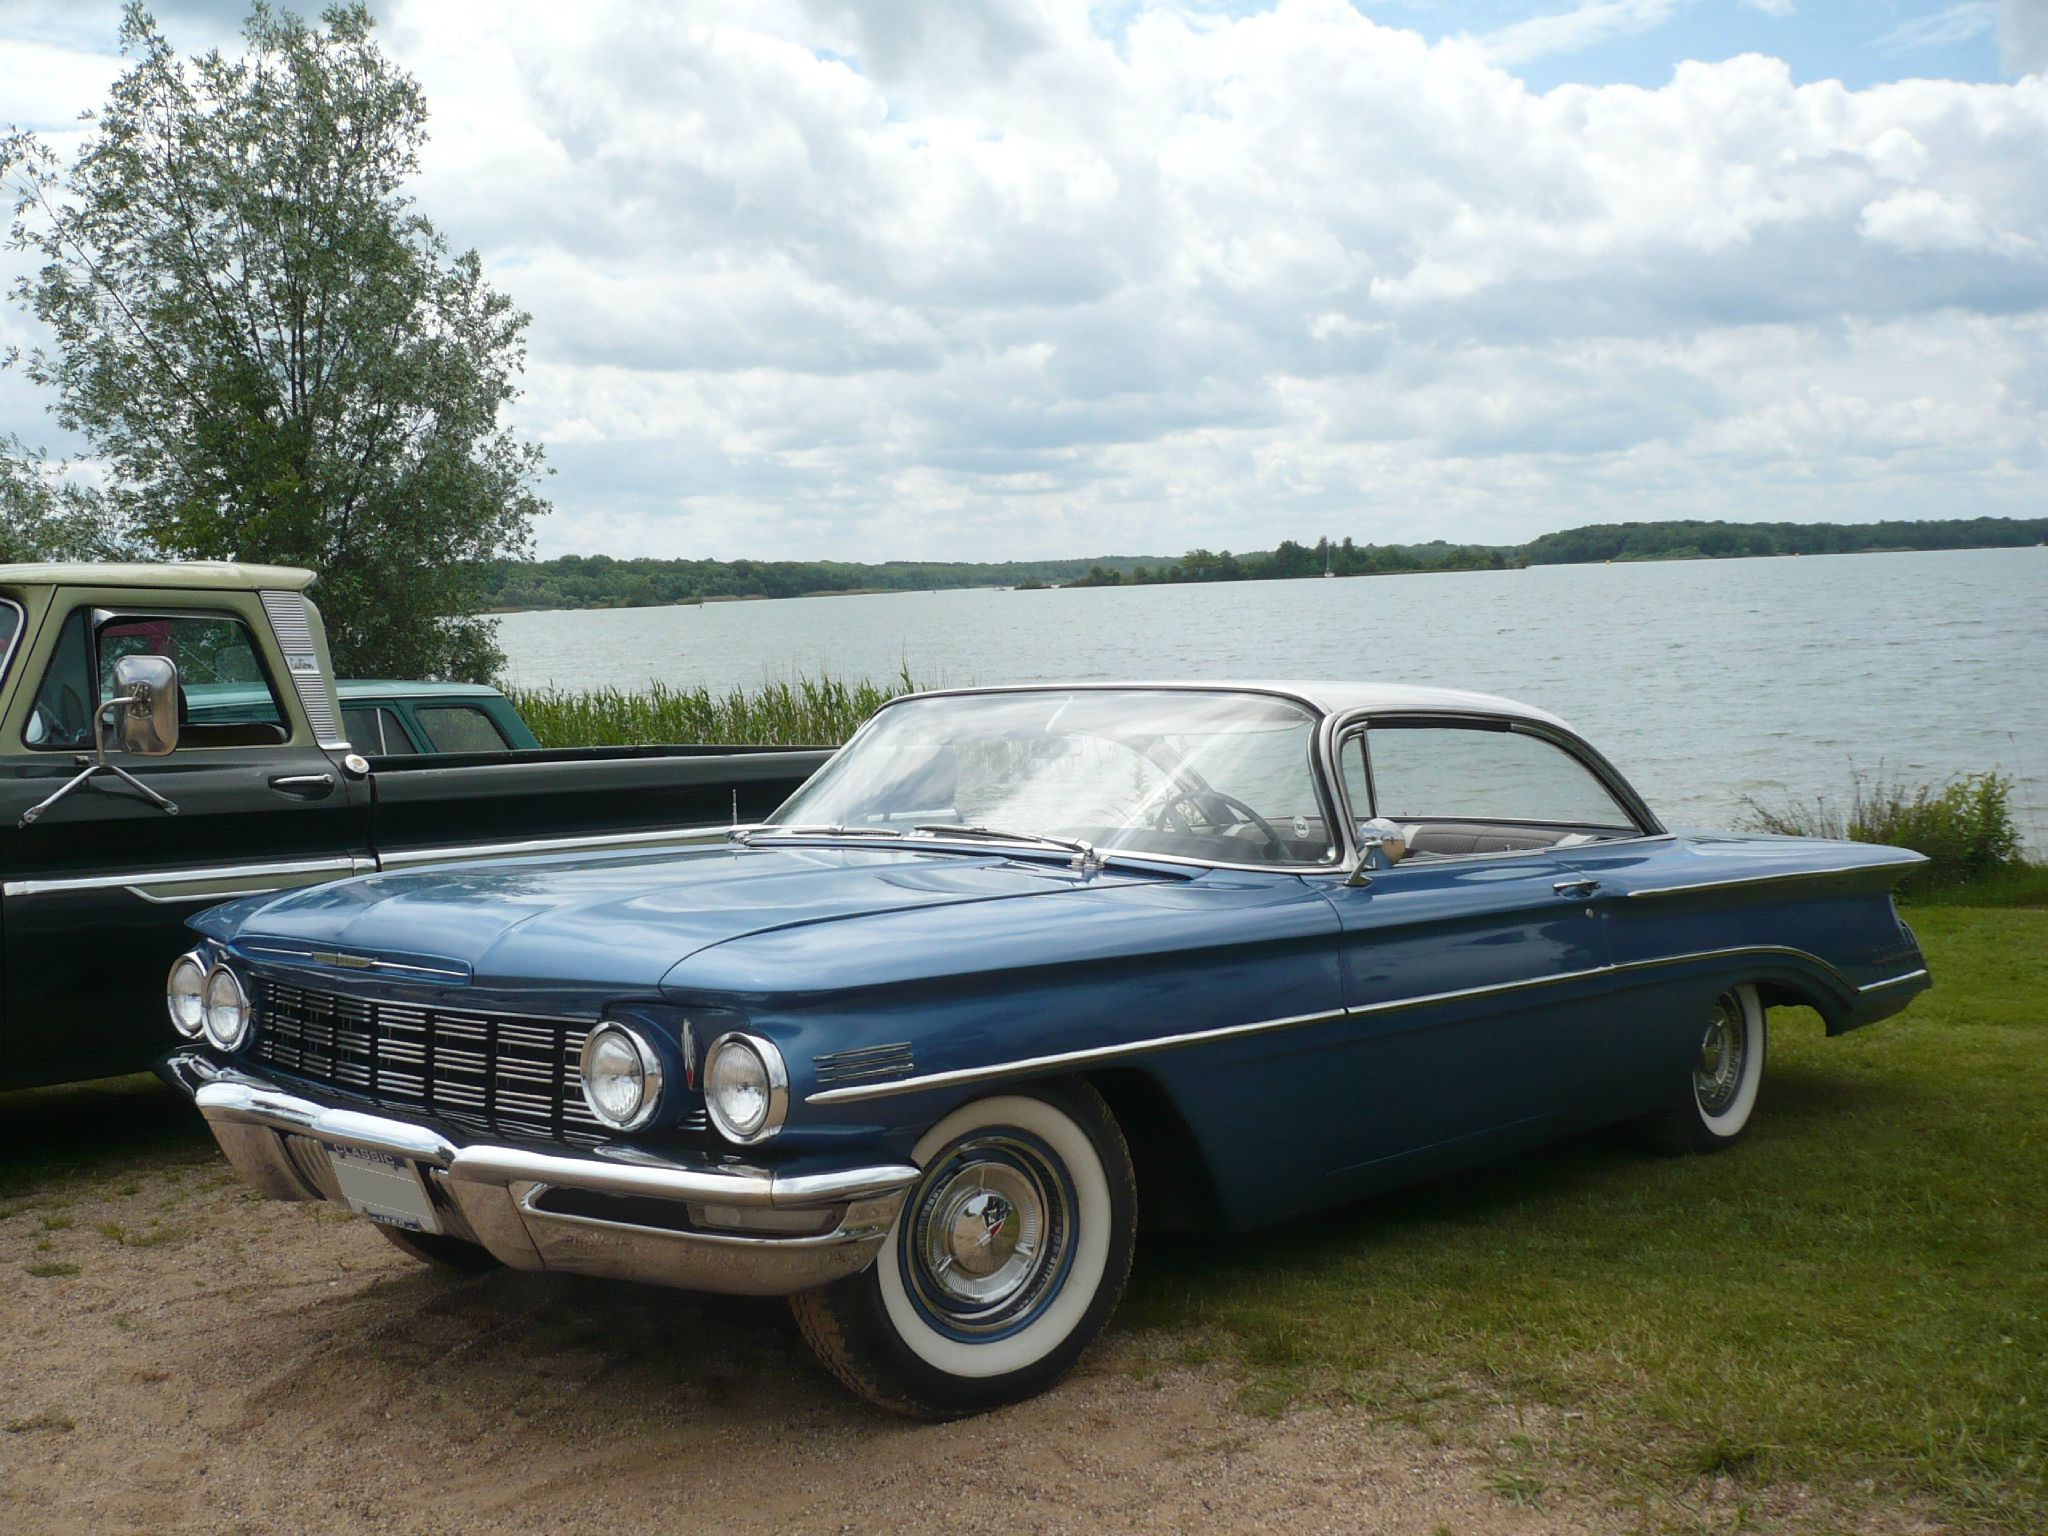 OLDSMOBILE Super 88 2door hardtop 1960 Madine (1)